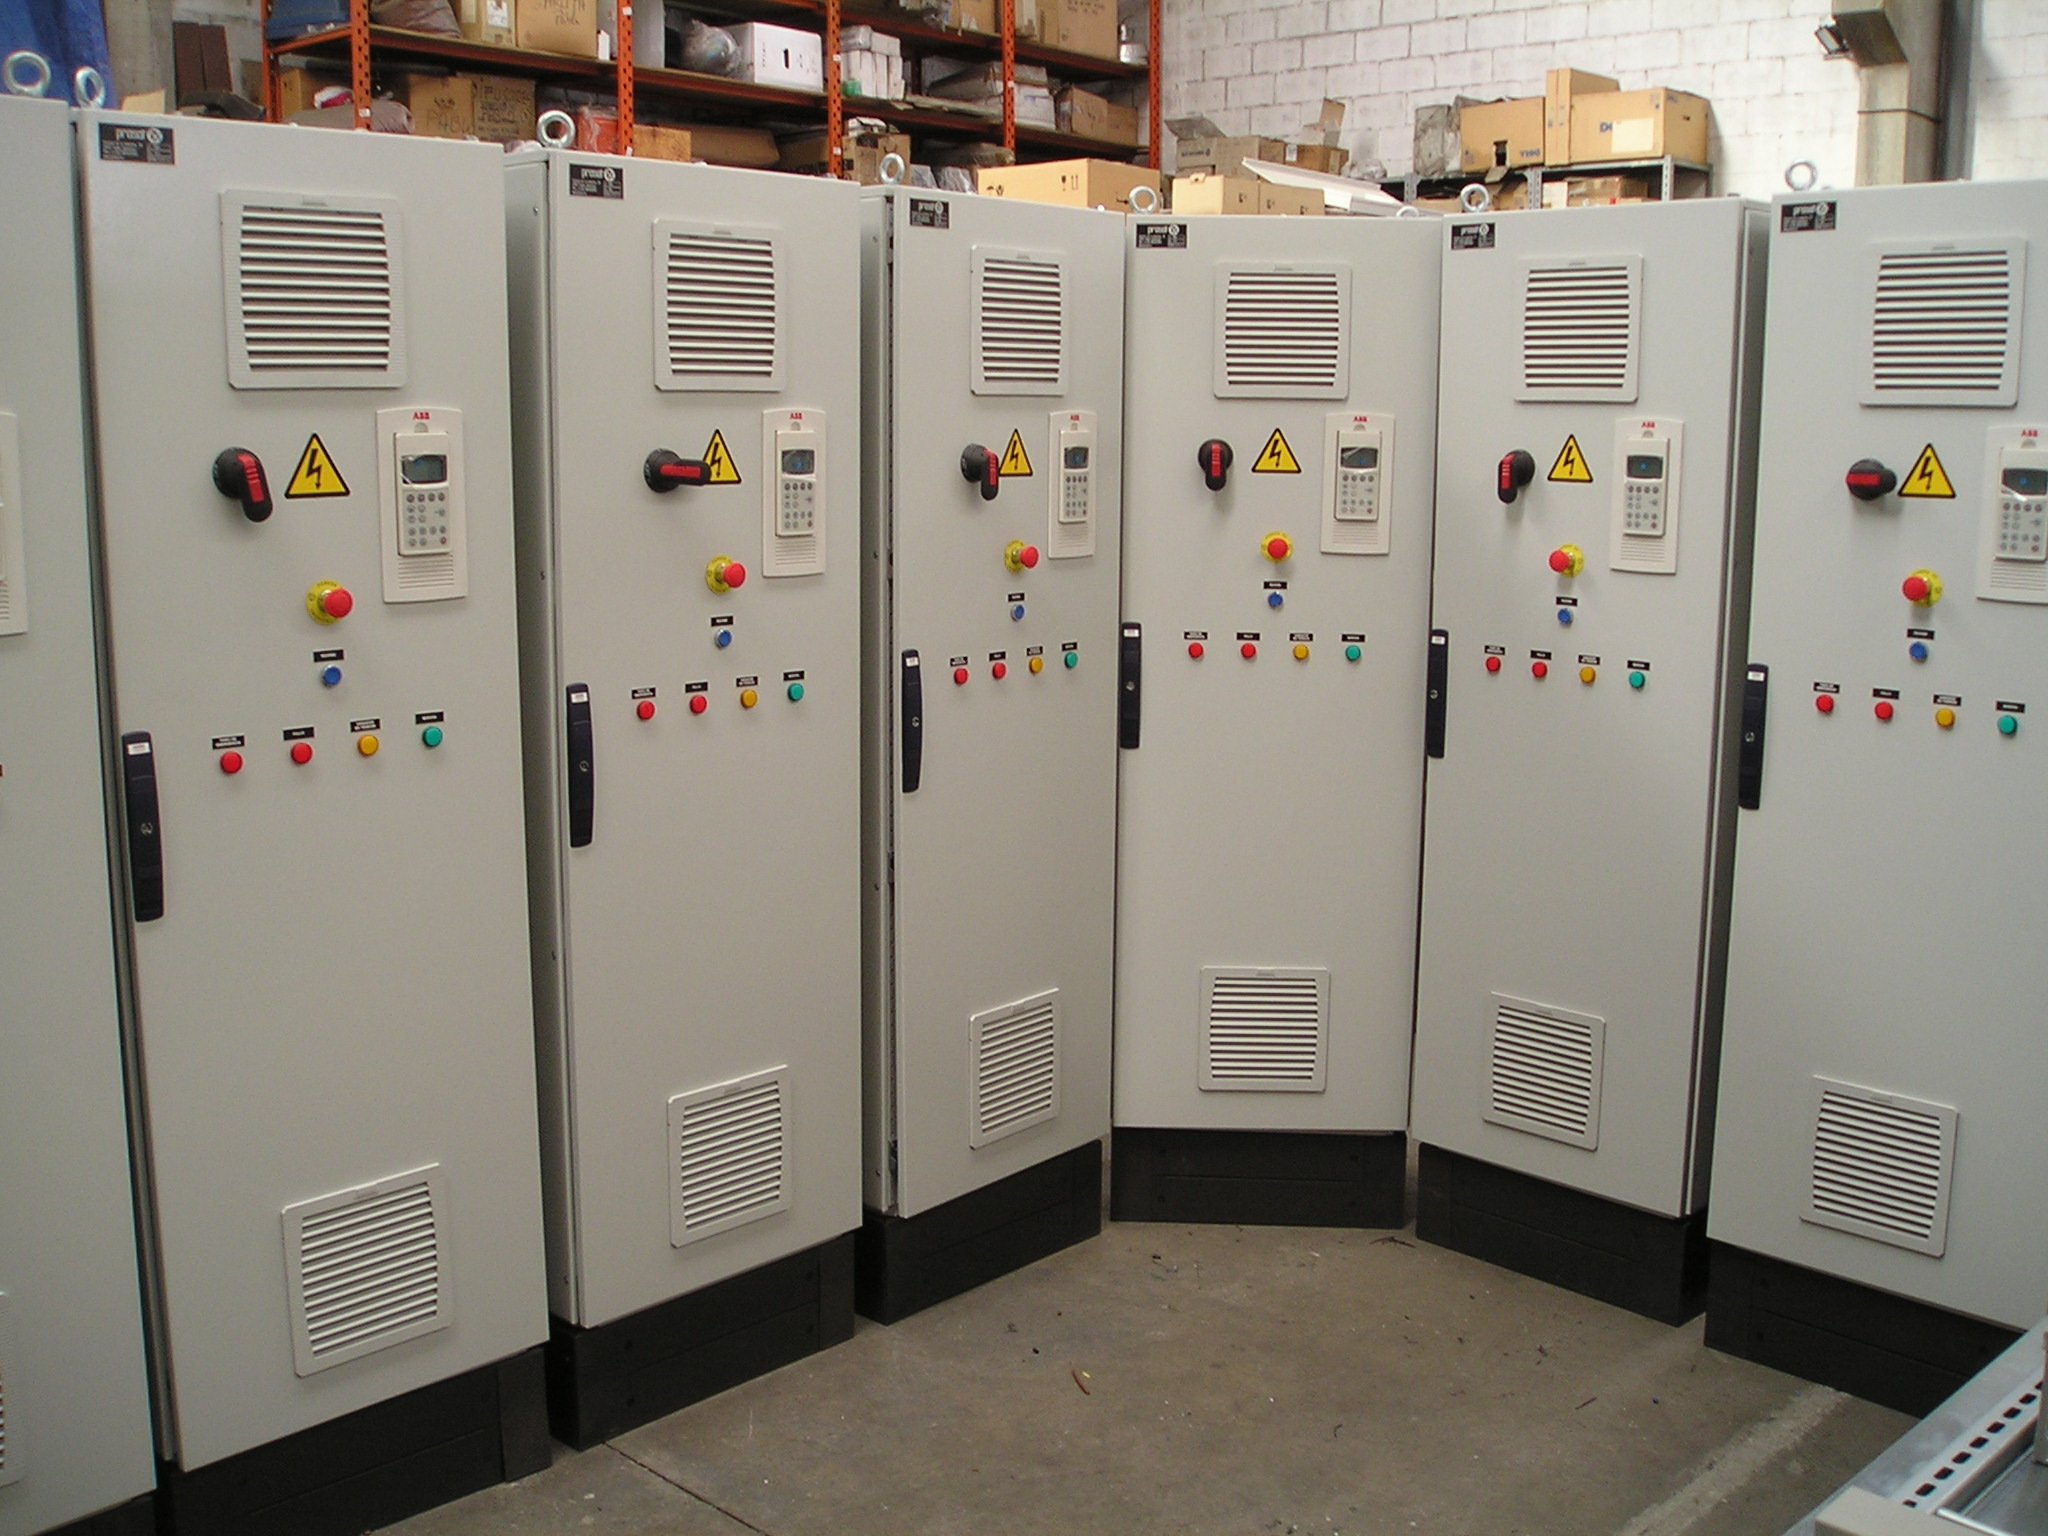 Manufacturing series of cabinets for the concrete industry.